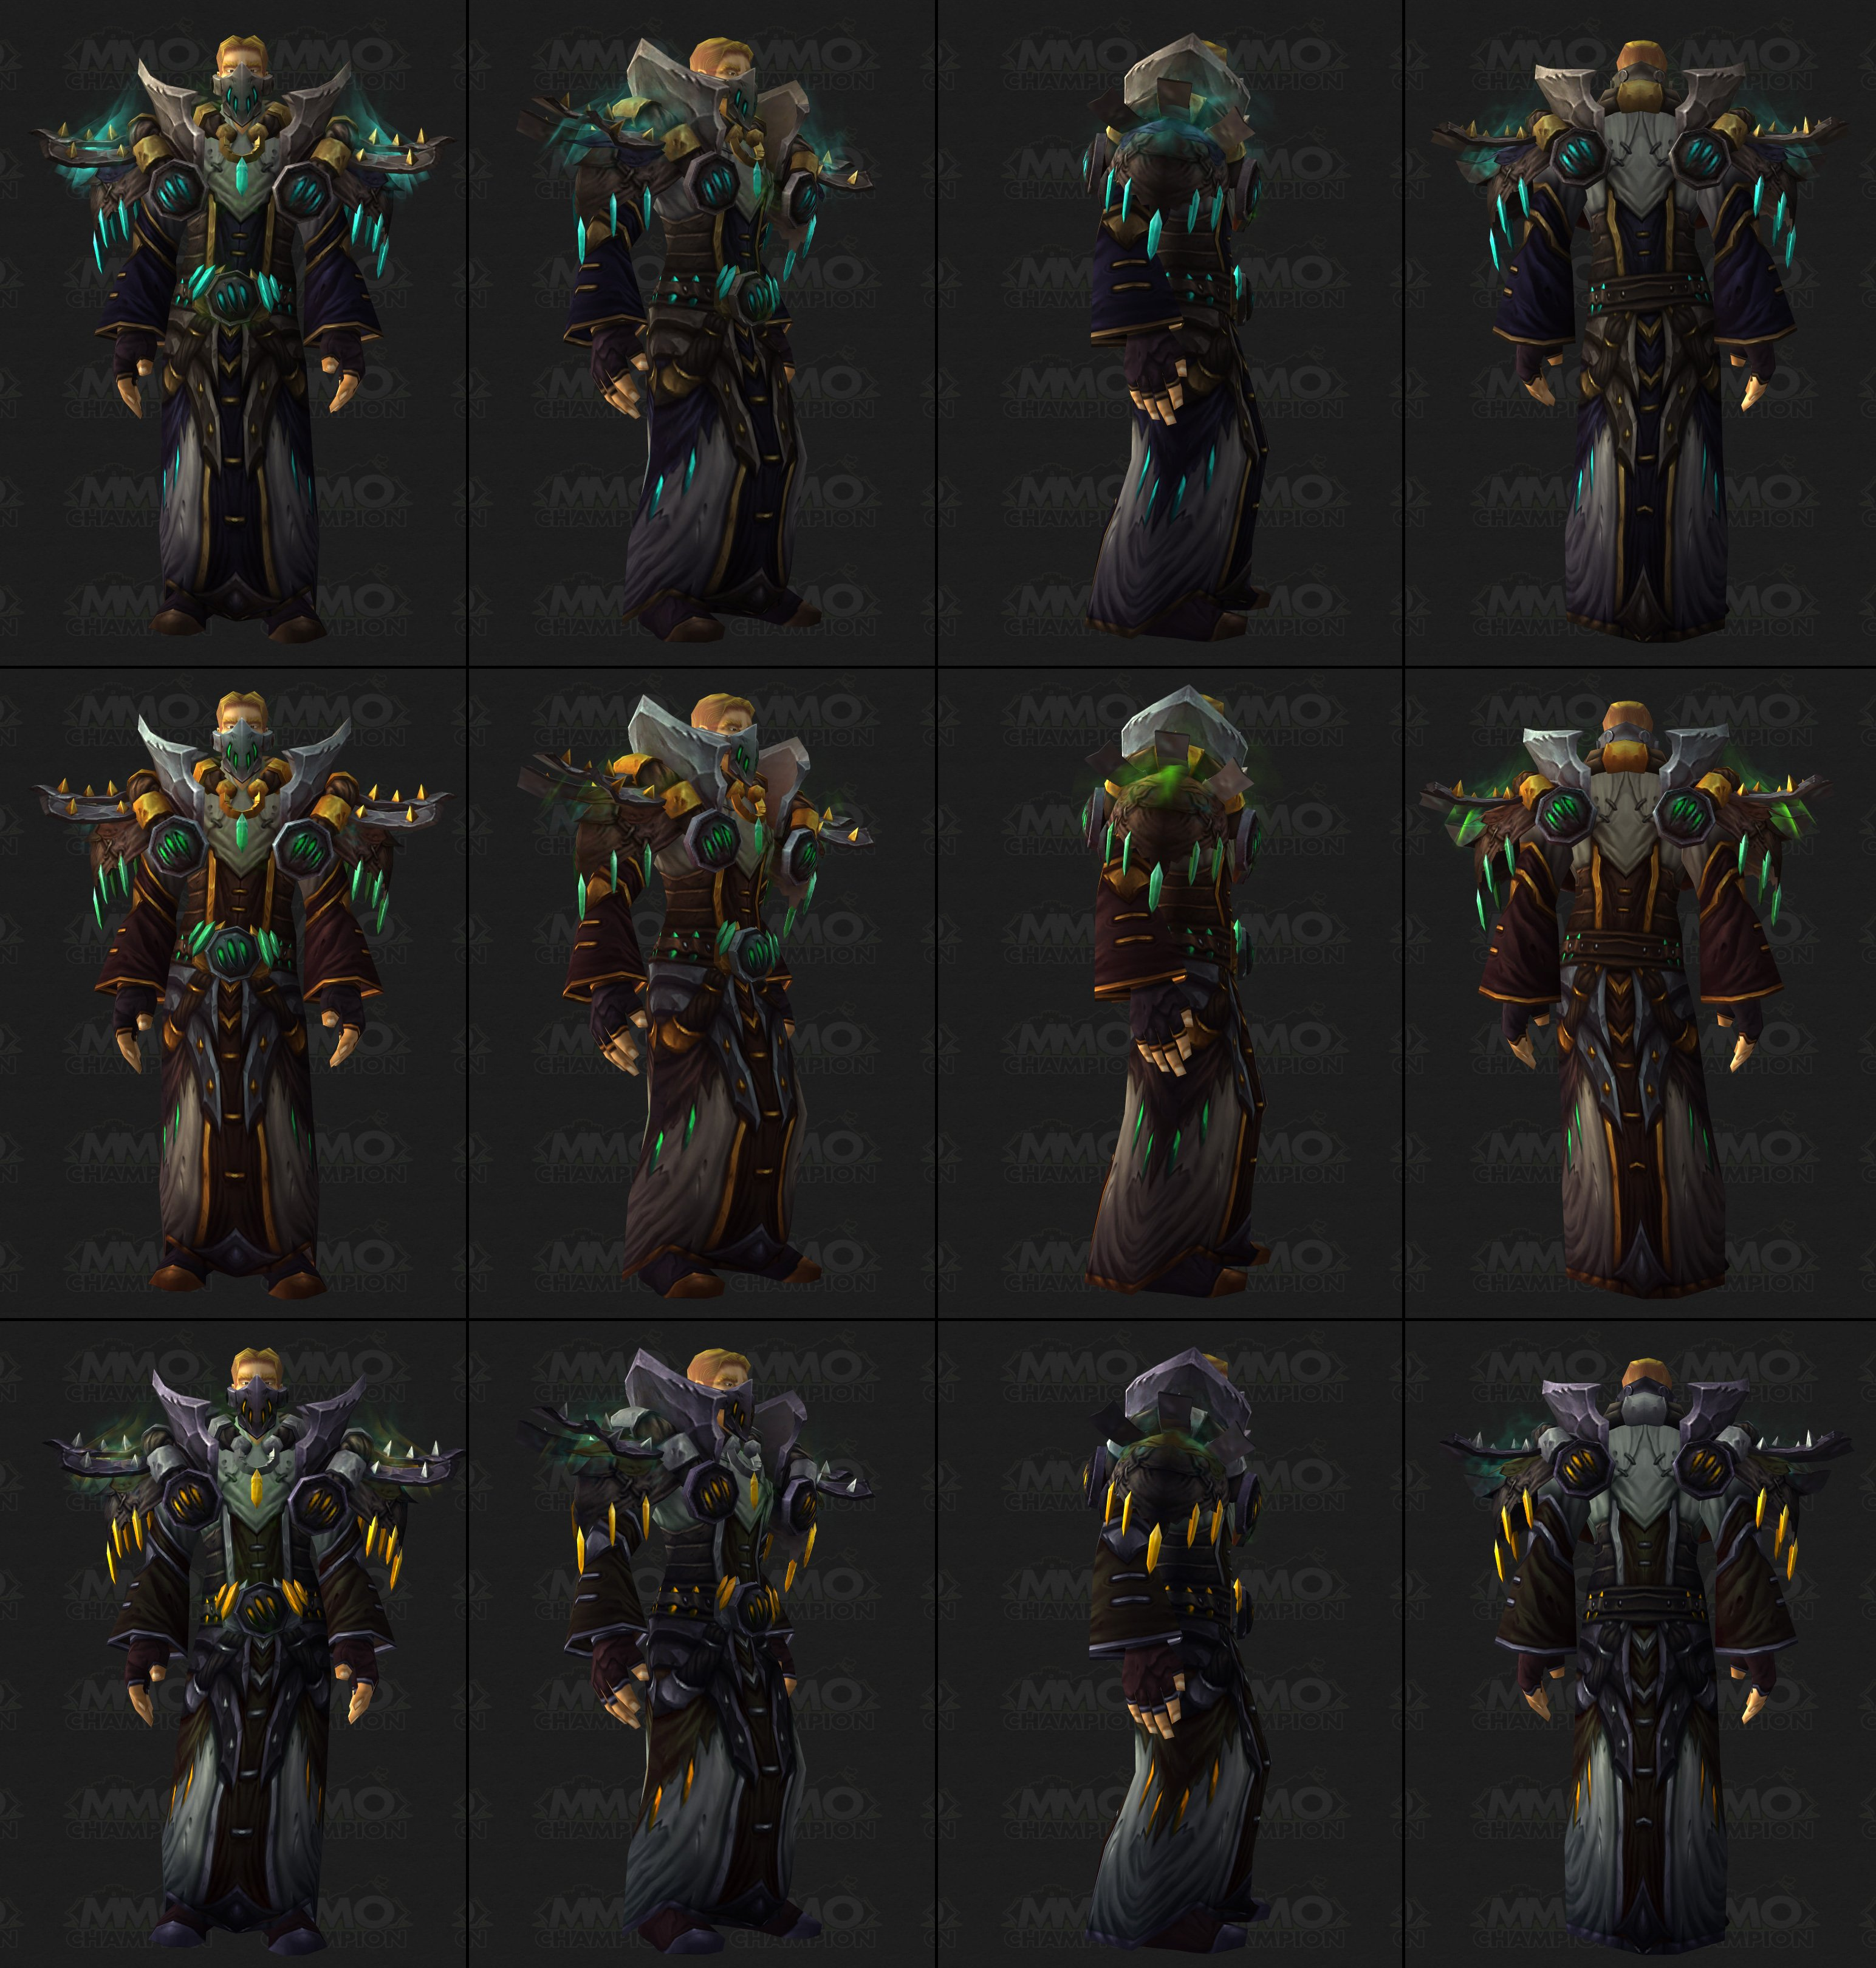 Declining quality of wow armour sets    - World of Warcraft